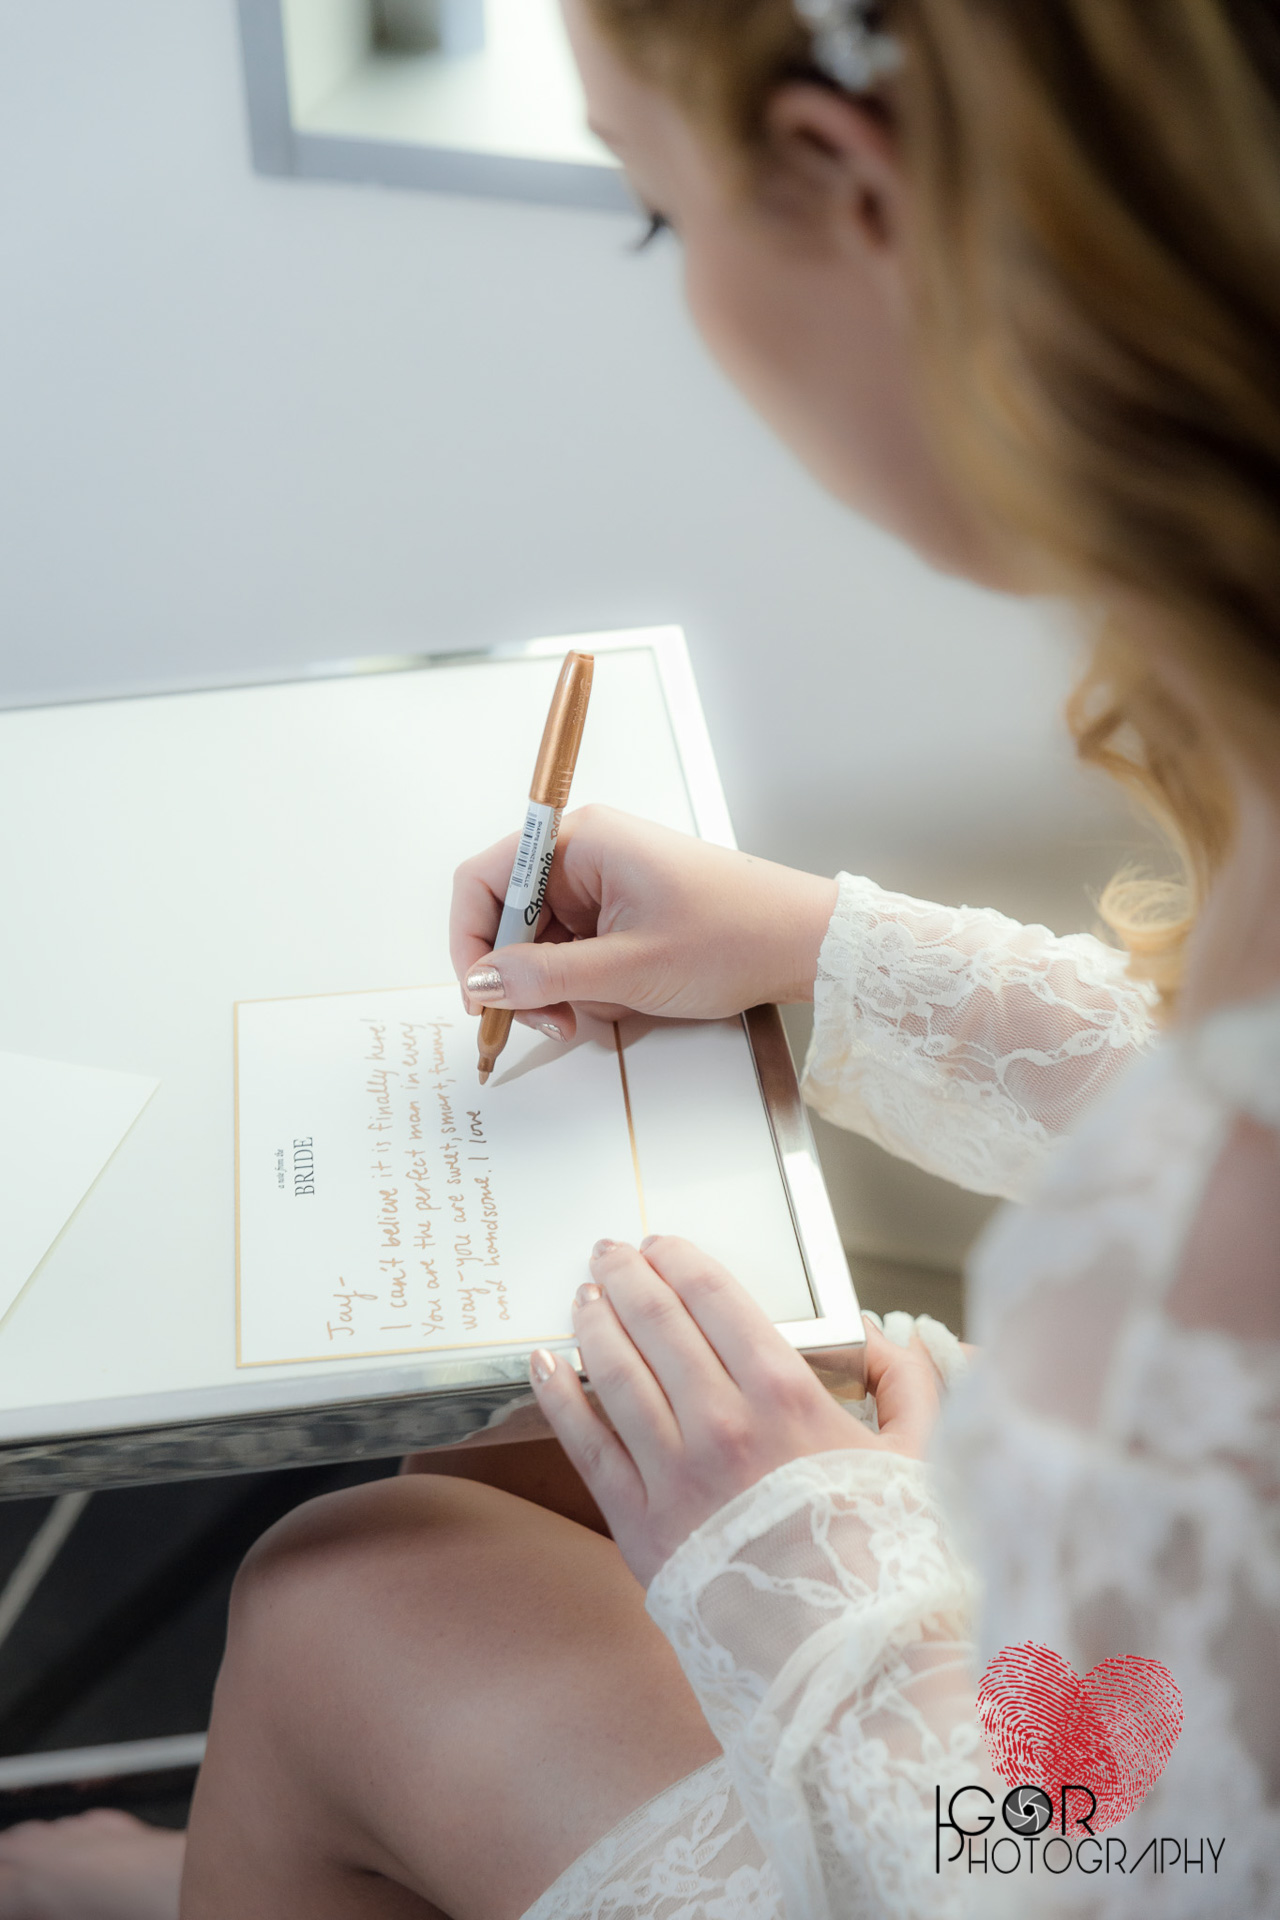 A Dallas Bride writing a love letter to the groom.